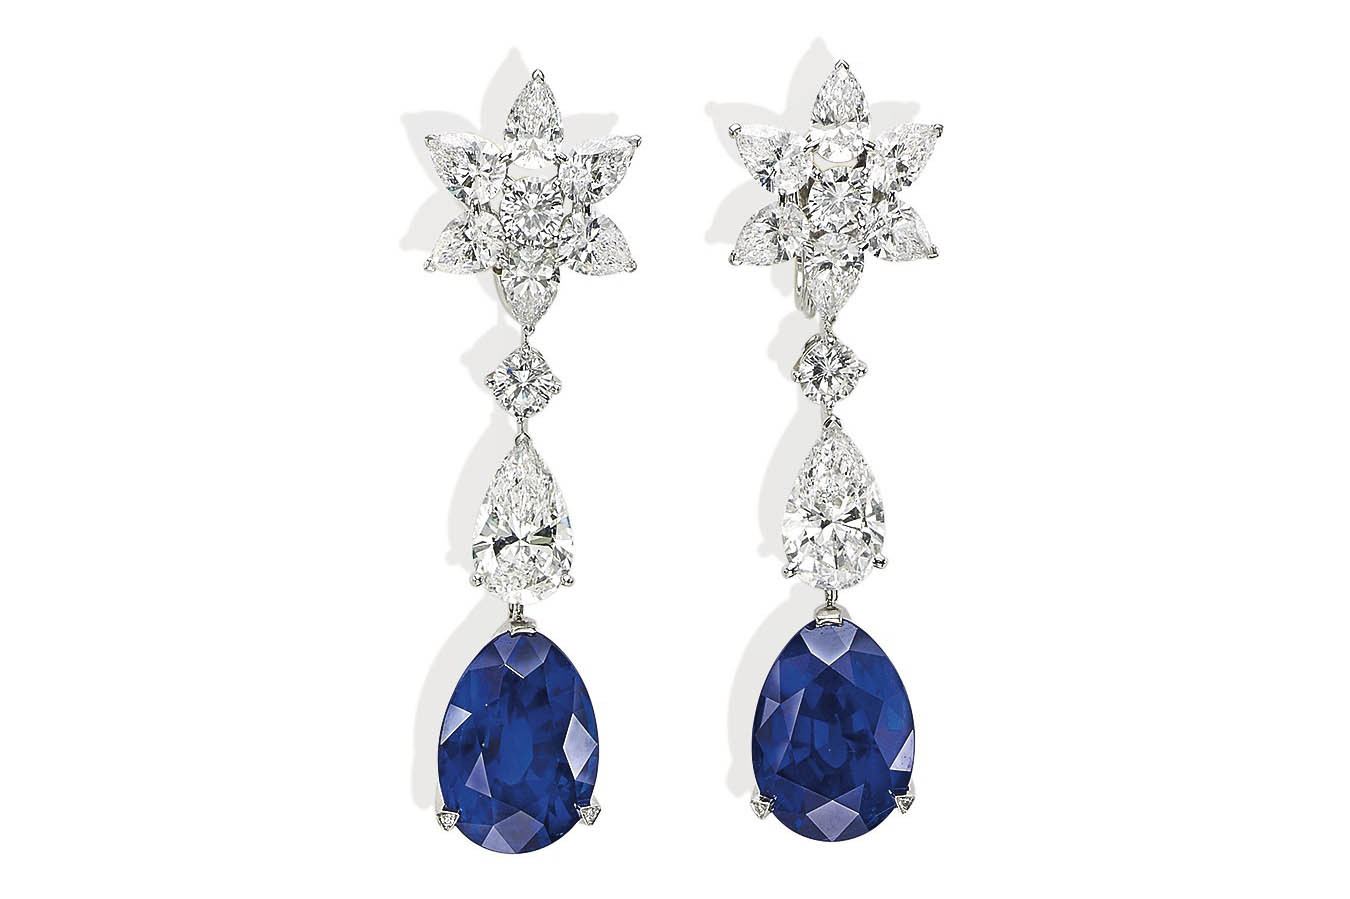 Pair of diamond and sapphire earrings by Cartier